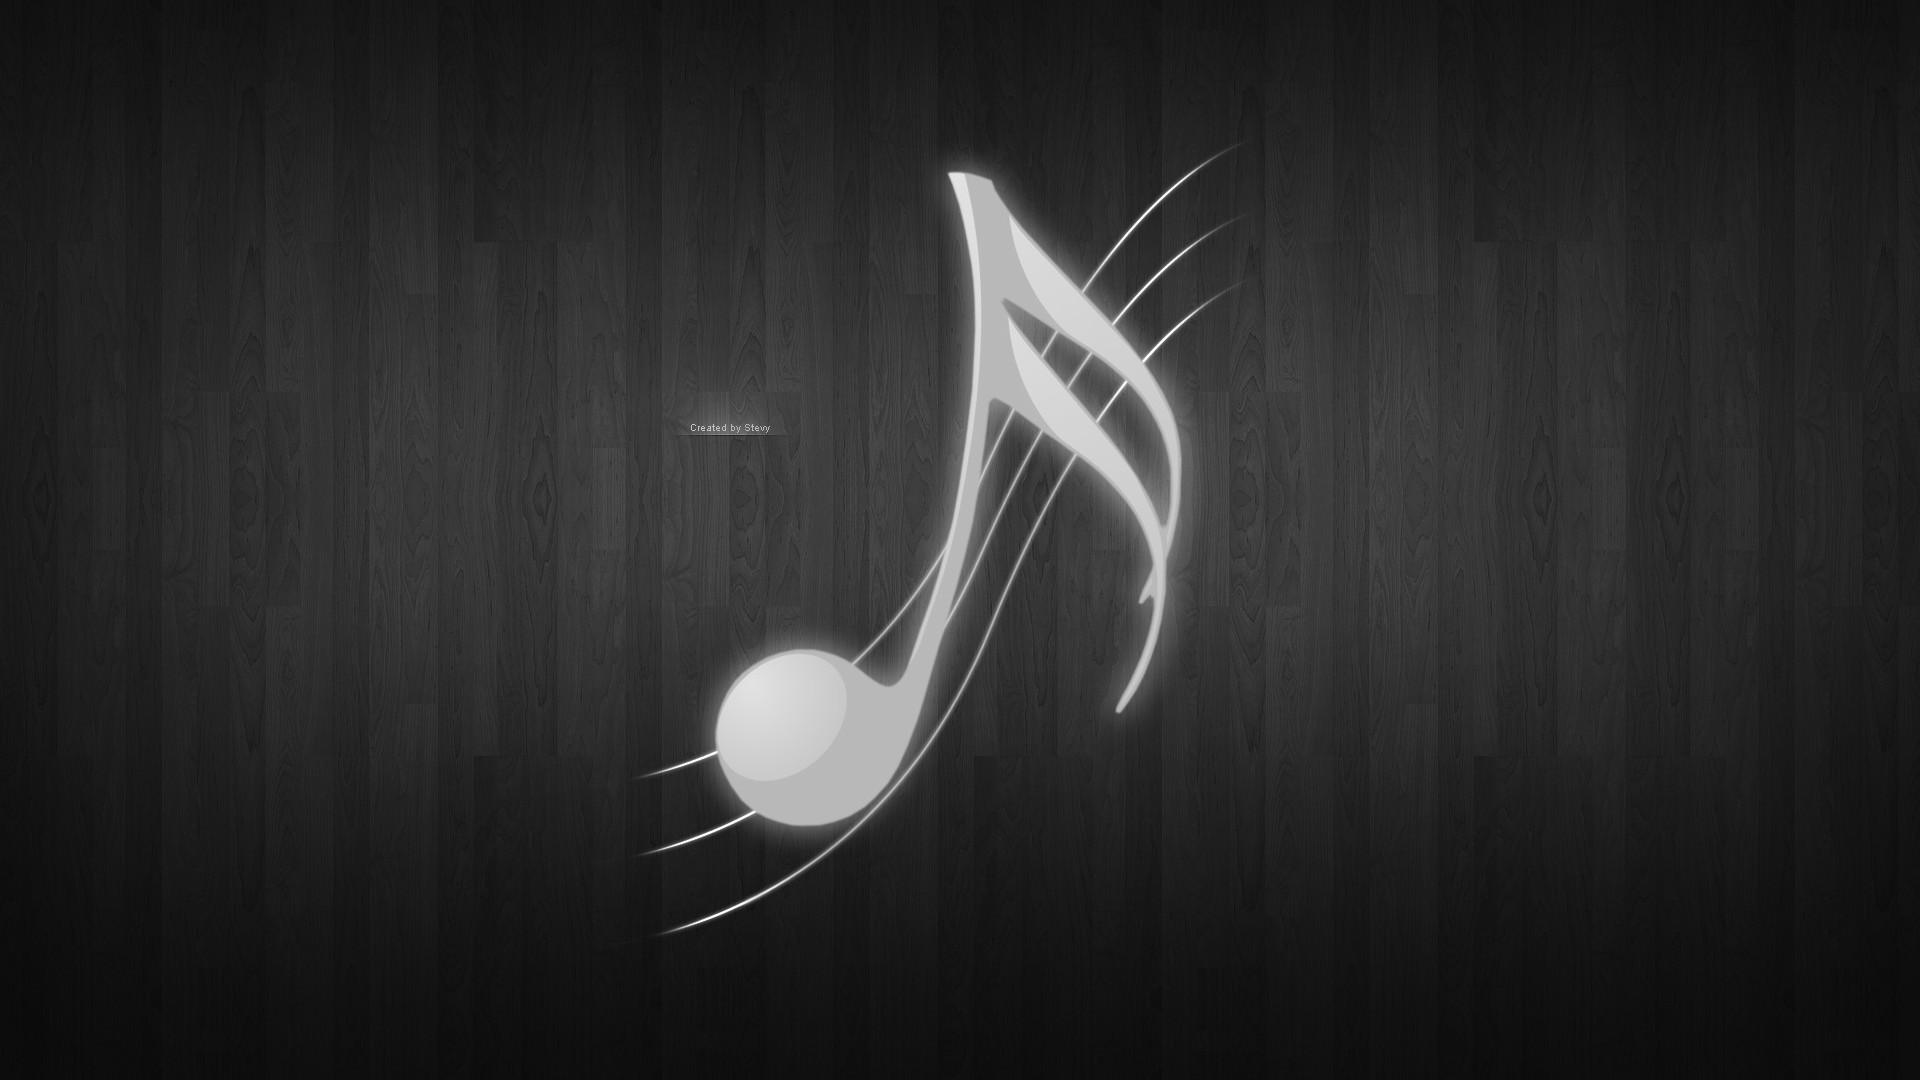 Music Icon Wallpaper